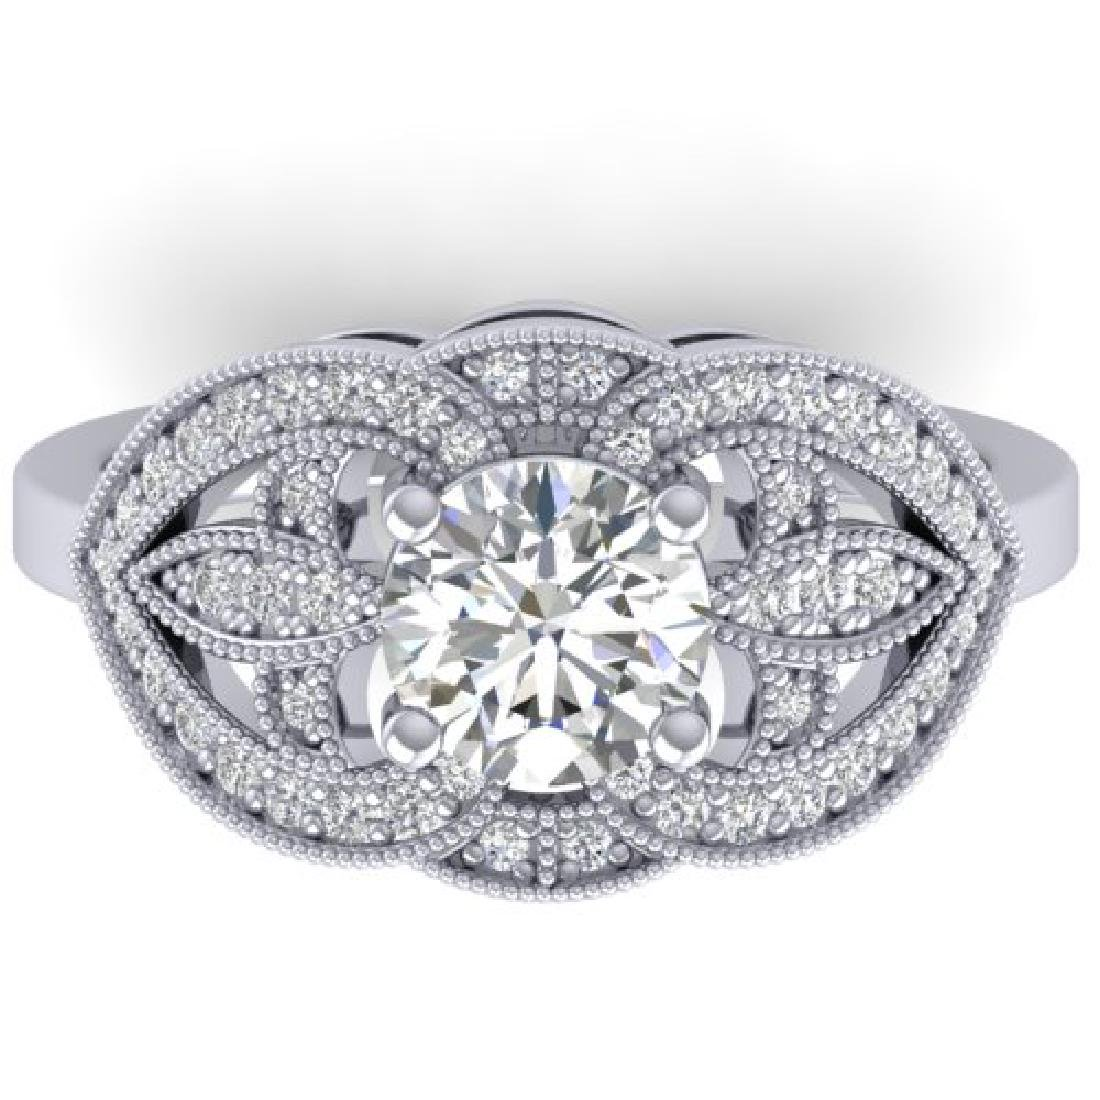 1.5 CTW Certified VS/SI Diamond Art Deco Micro Ring 18K